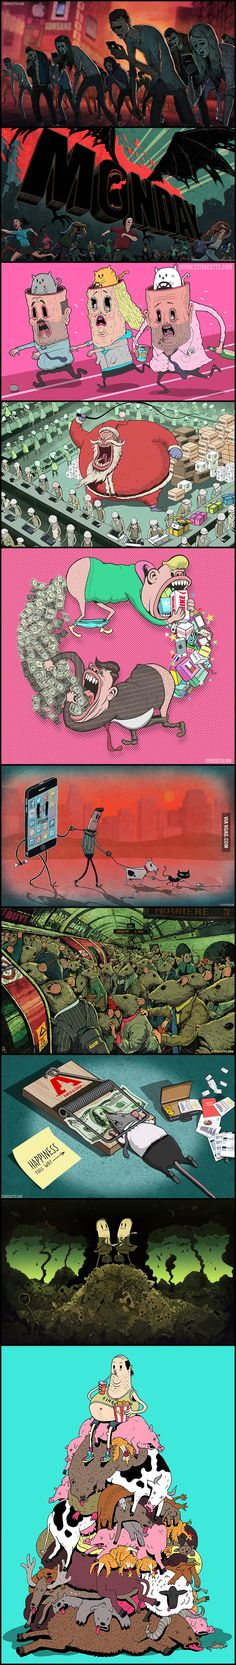 Our brutal reality...